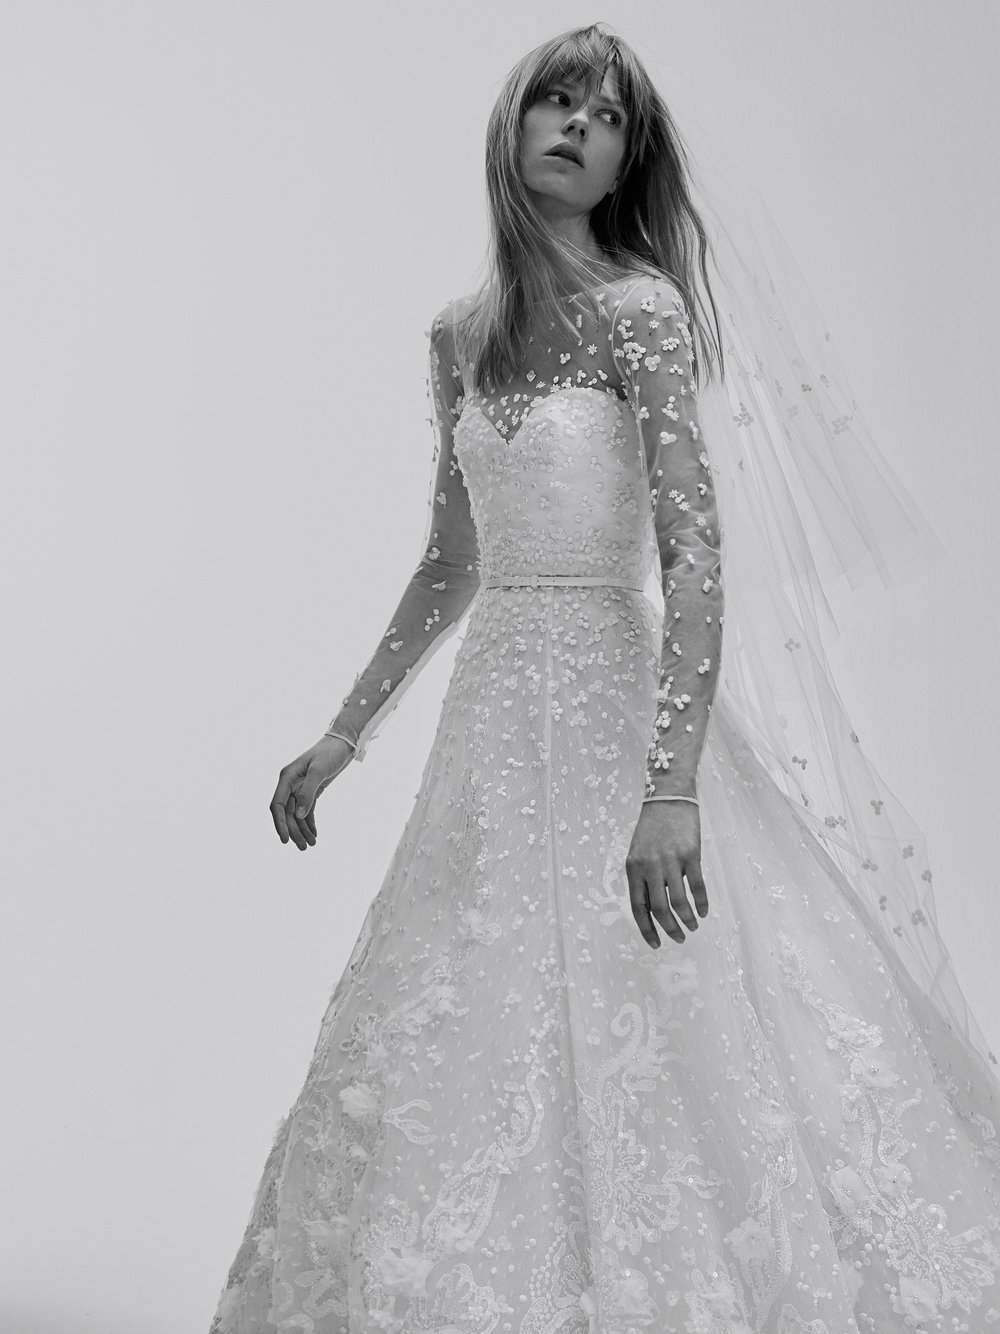 Wedding Gowns From The New 2017 Collection Will Be Available To Purchase Exclusively At Neutral Bay Boutique For Two Days Only